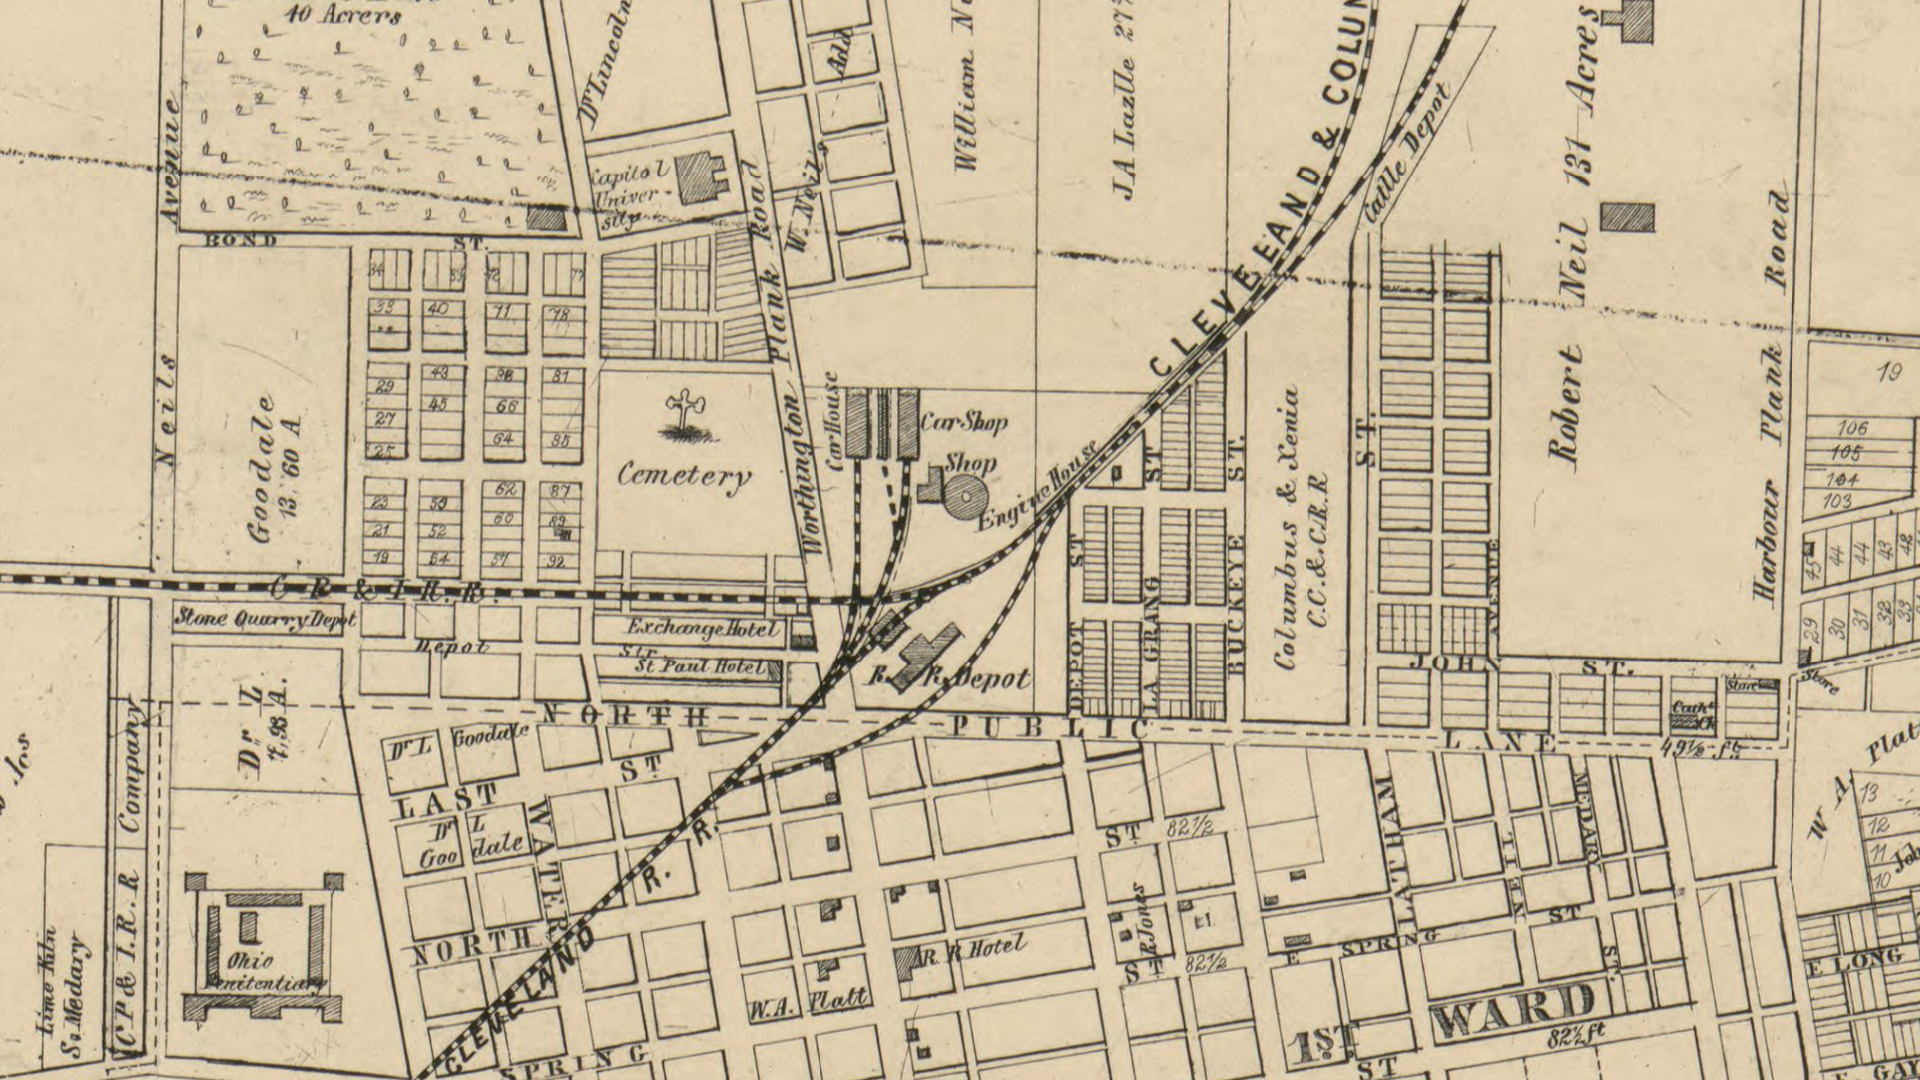 North Ohio Map.A Tower Will Rise Above North Market Below A Graveyard Awaits